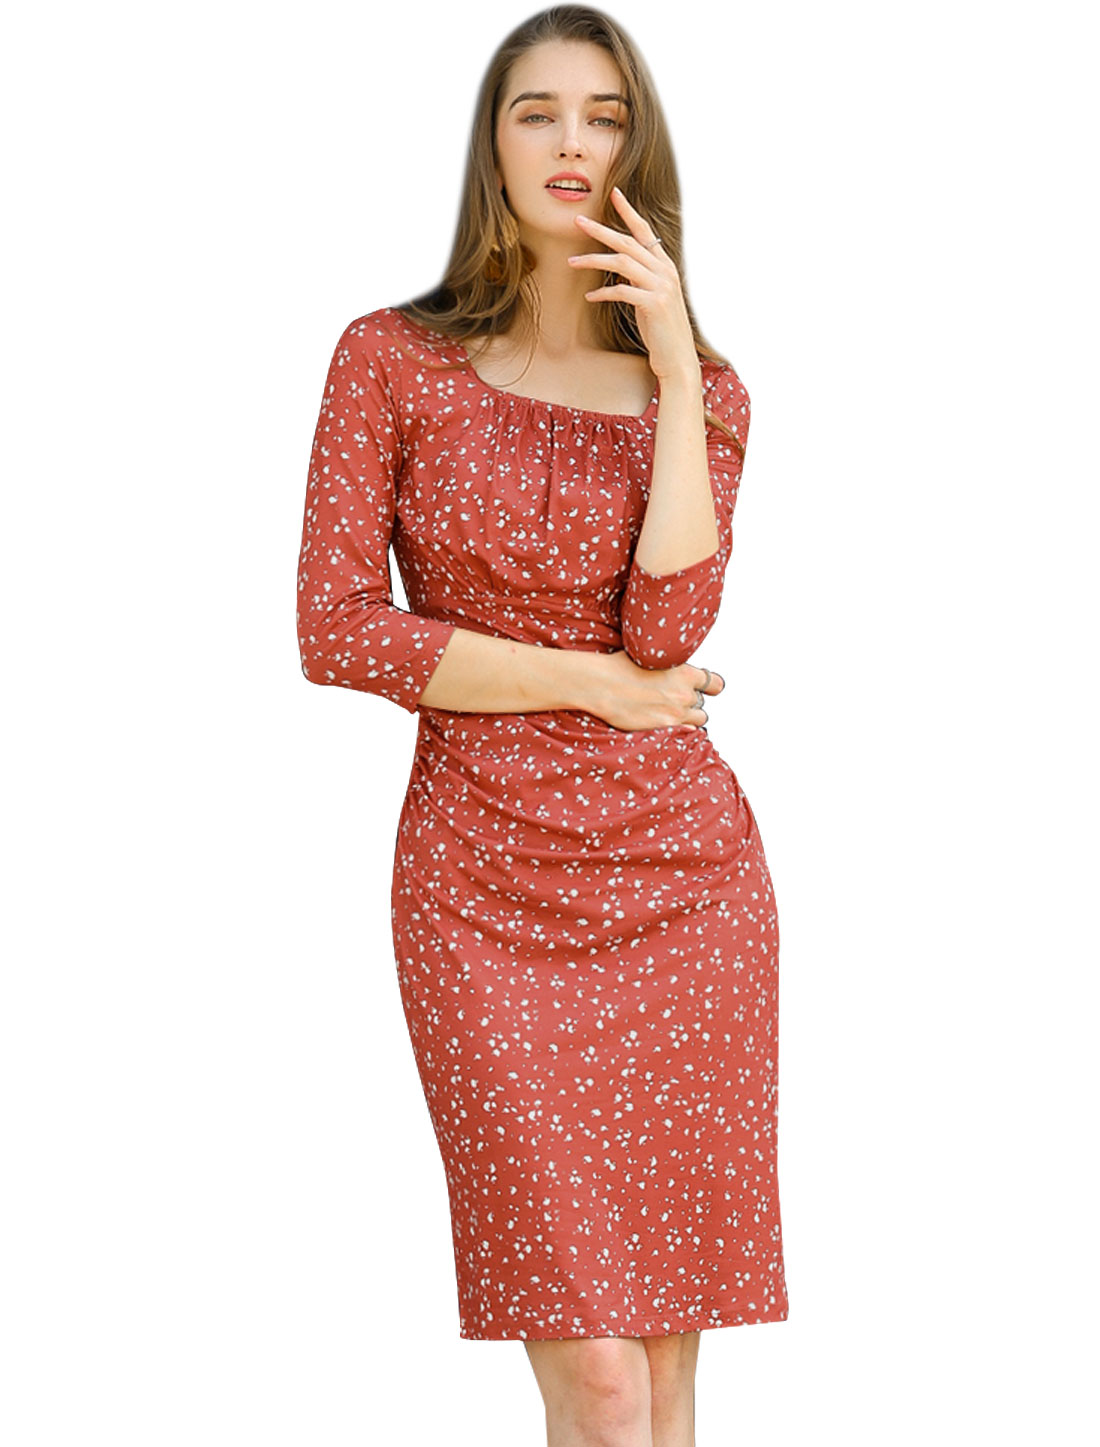 Allegra K Women's Dot Square Neck 3/4 Sleeve Ruched Dress Red S